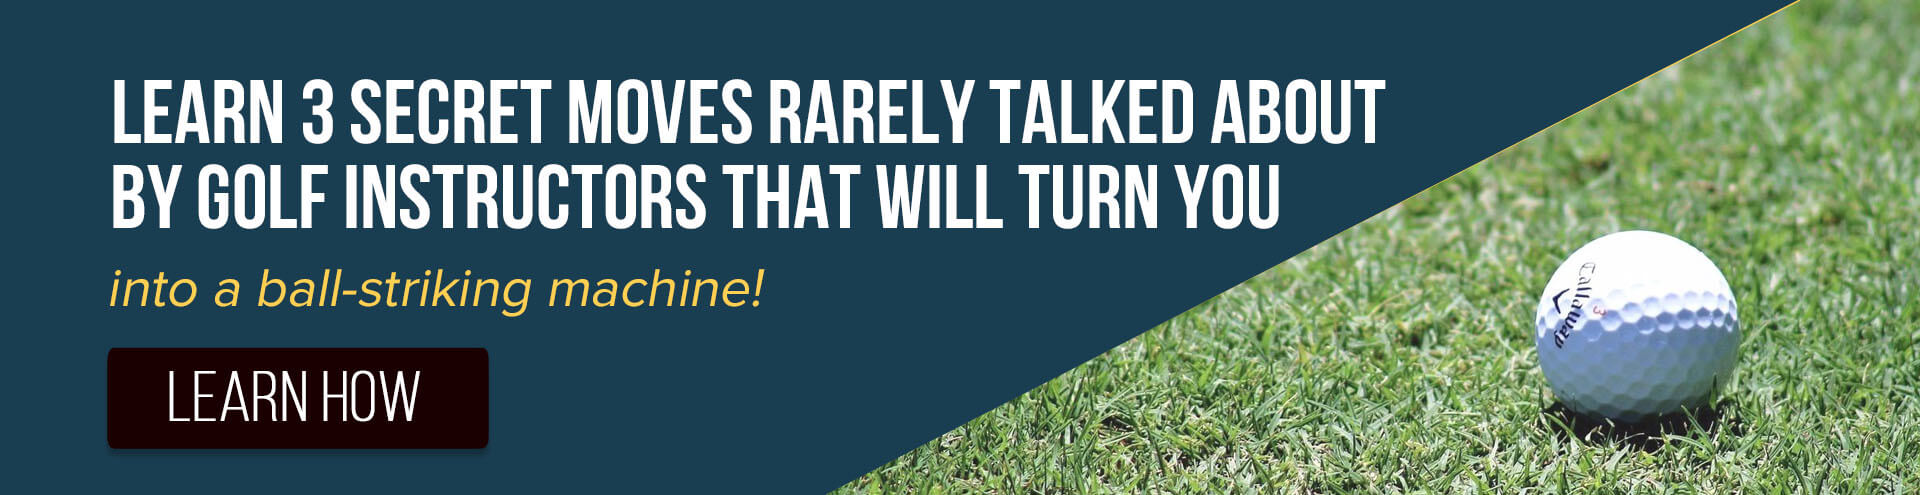 Discover the carefully guarded secrets the best golf pros know about lowering their scores, and how YOU can improve your game....in only 10 minutes!